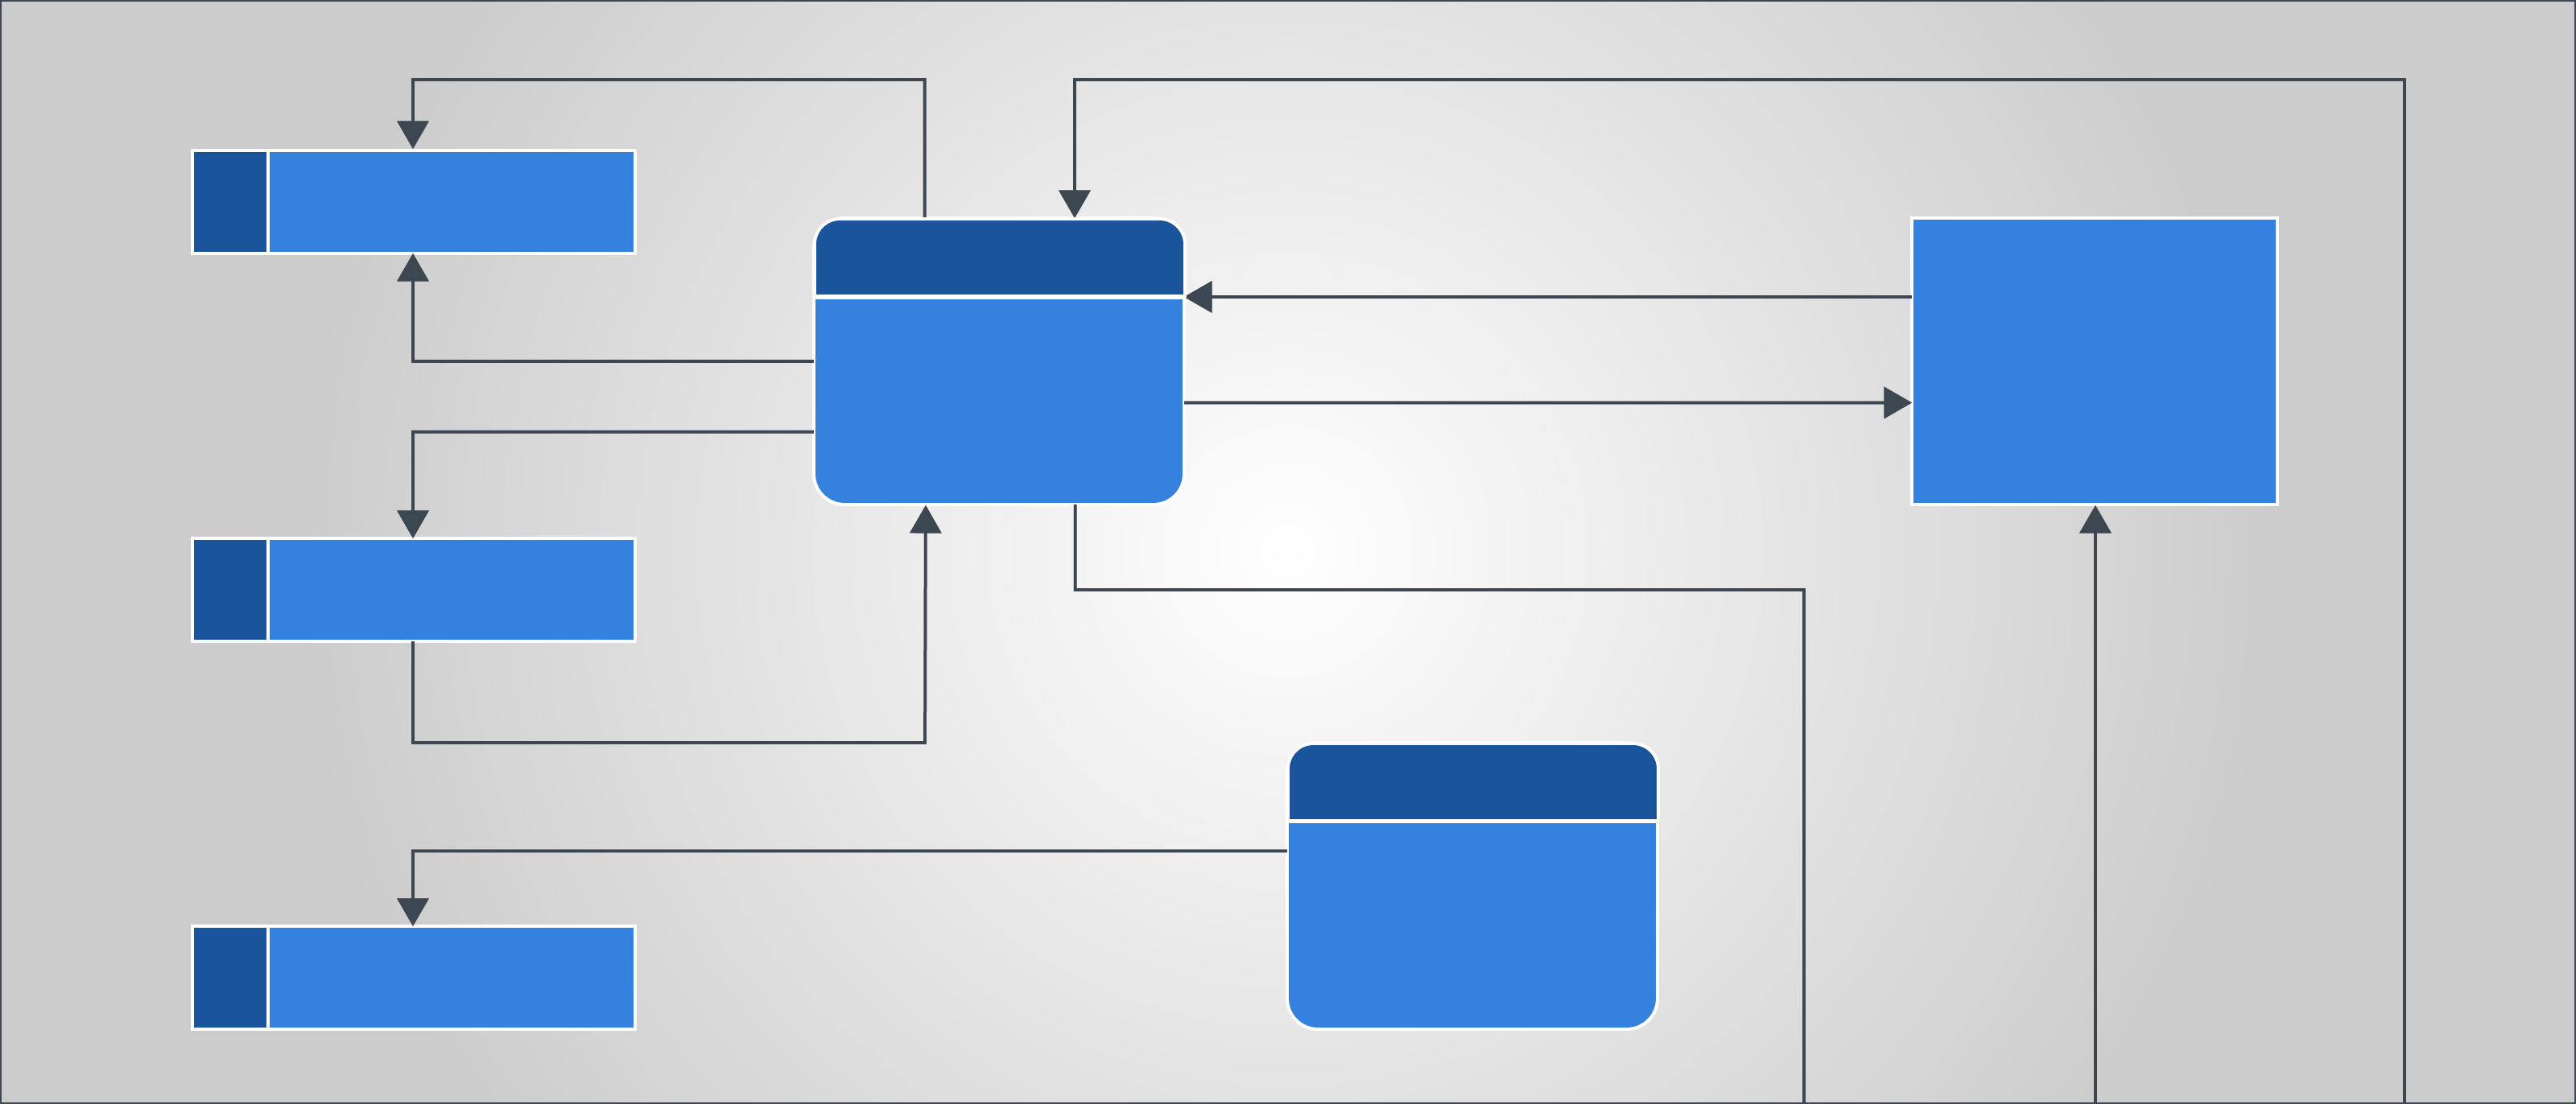 Data Flow Diagram Symbols Types And Tips Lucidchart Reliability Block 2 Out Of 3